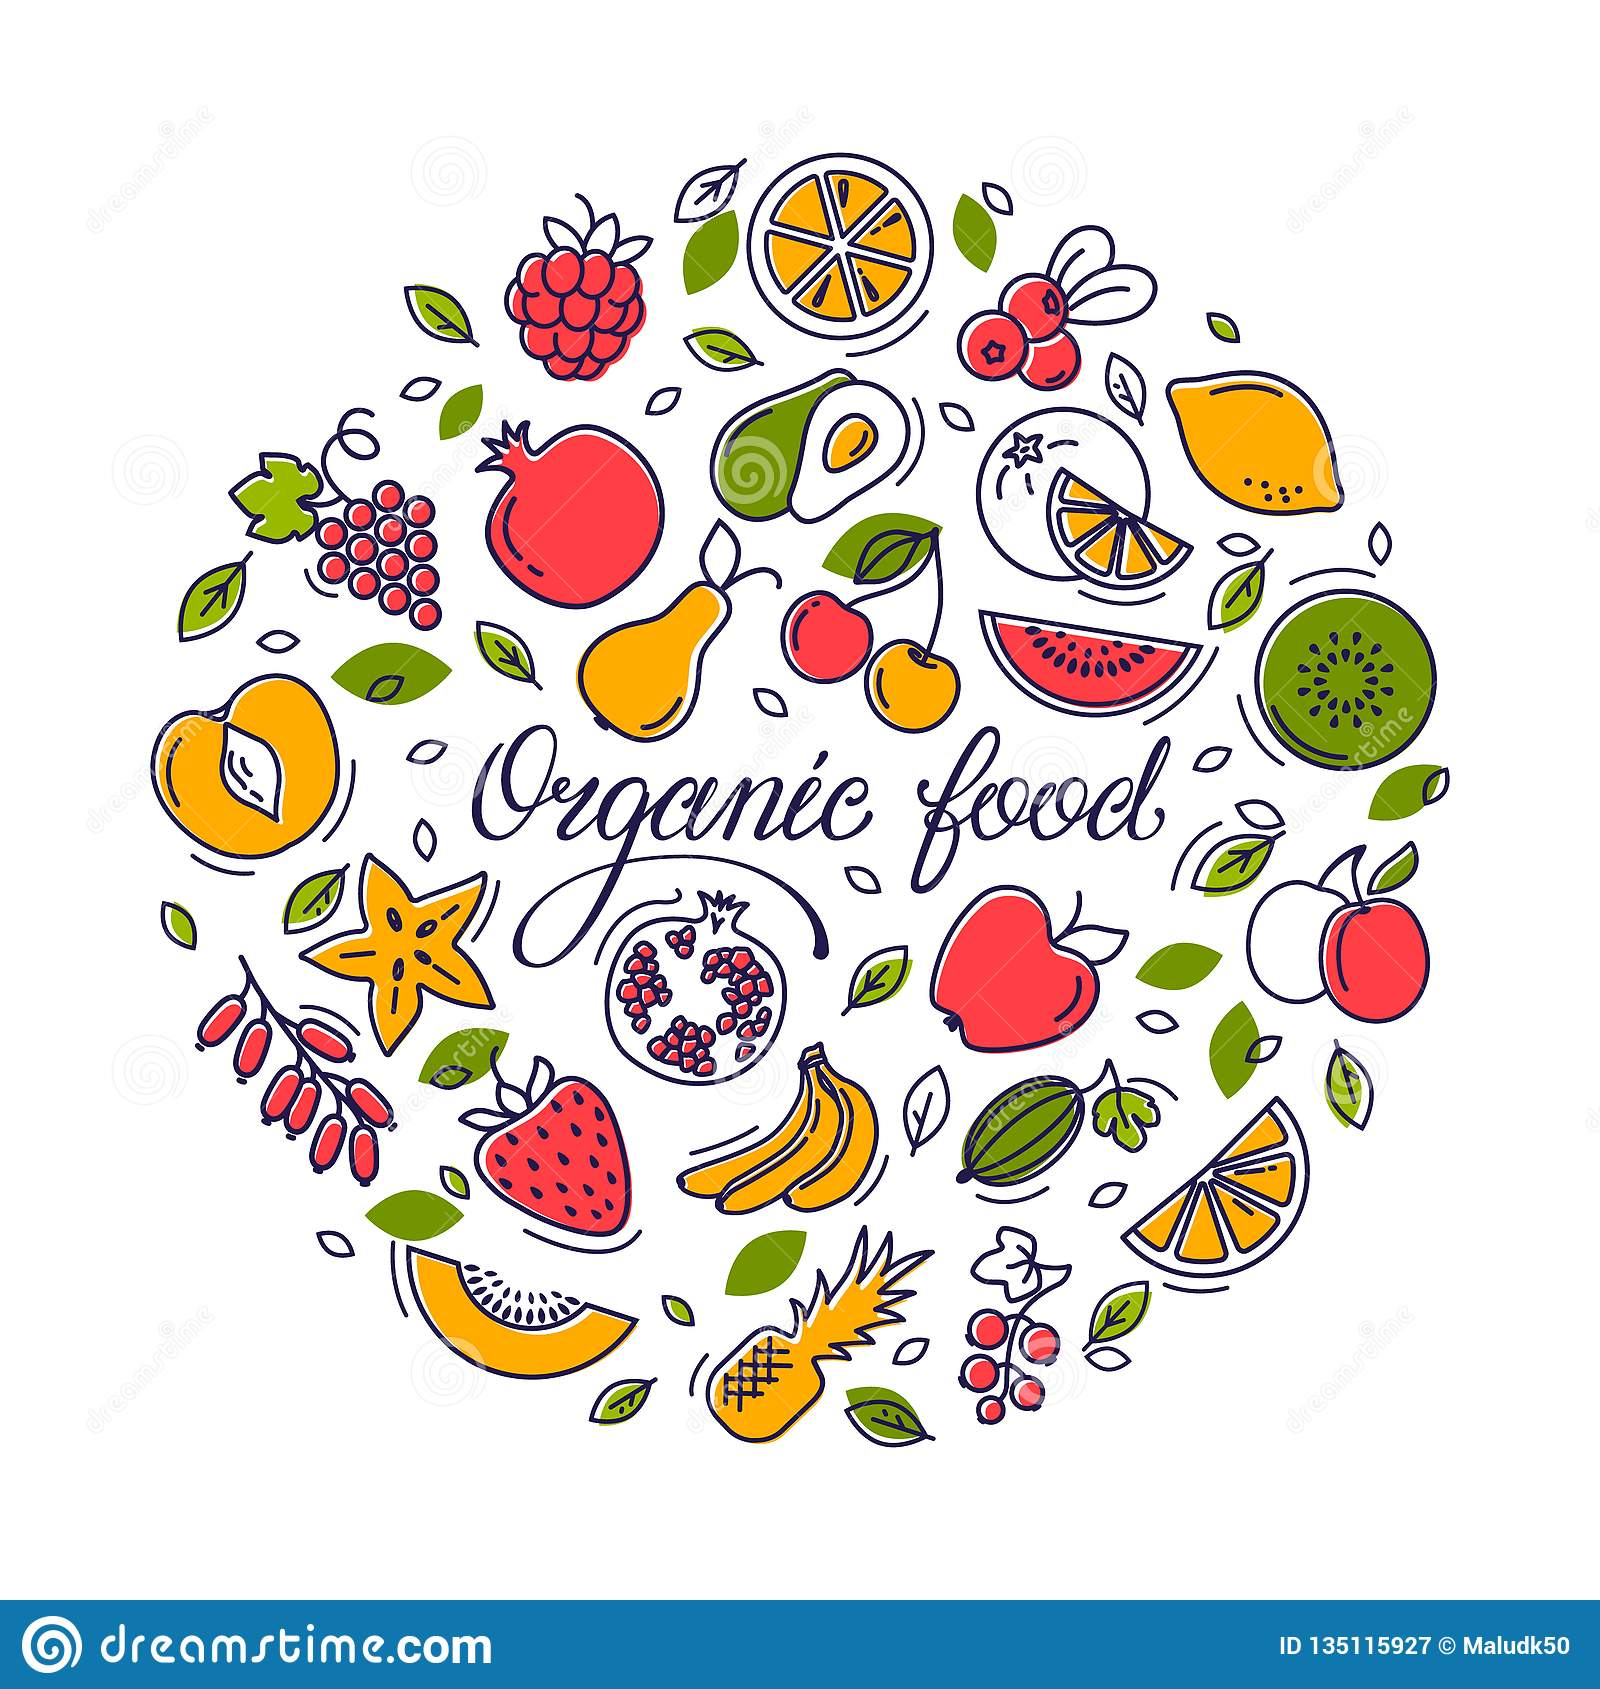 Circular illustration with fruit and text for shop, printing, website design.